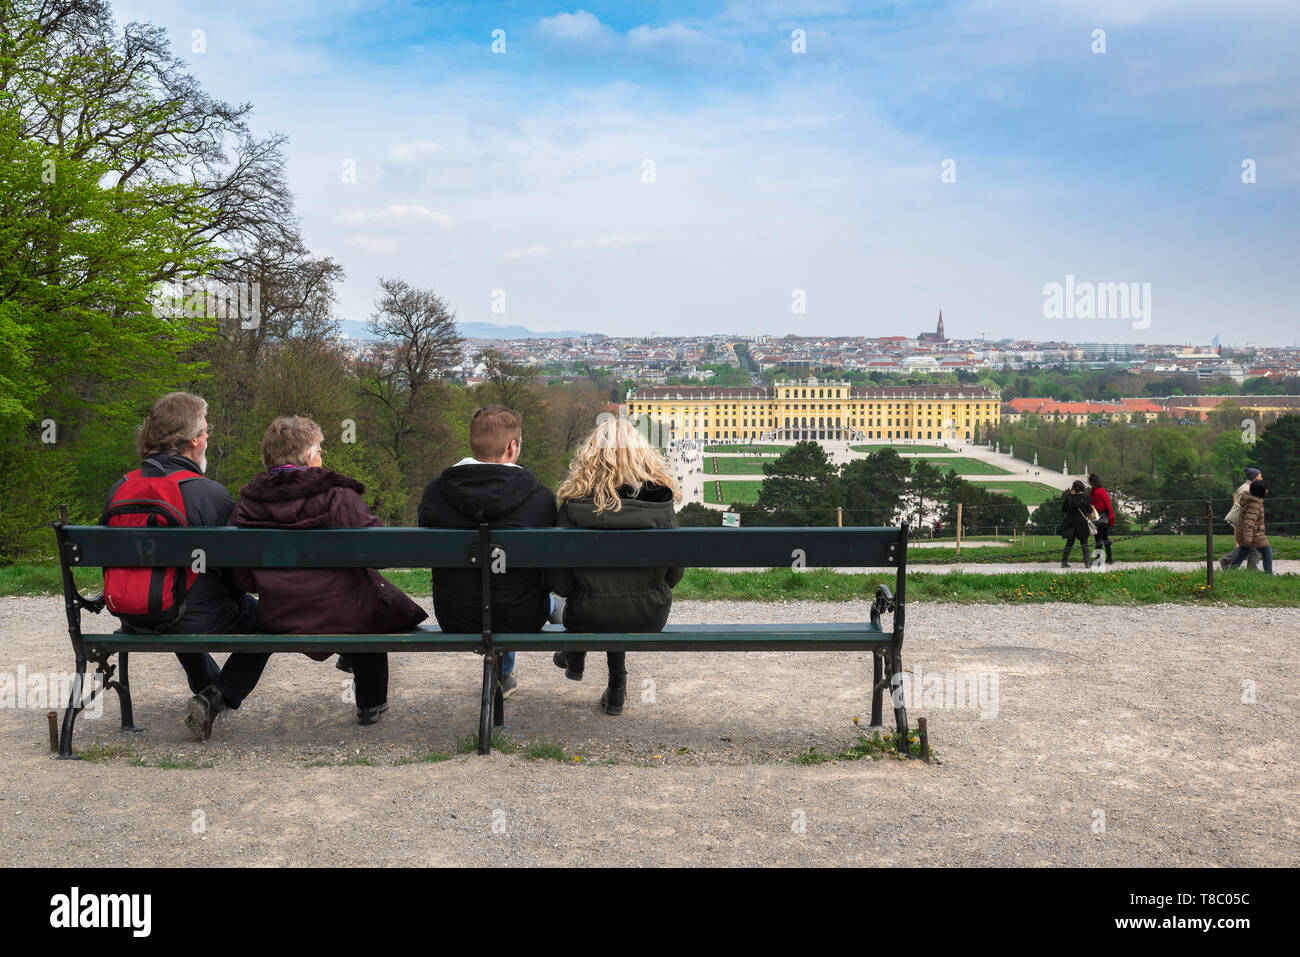 Vienna palace, rear view of tourists sitting on a bench looking towards the  palace and gardens of Schloss Schönbrunn in Vienna, Wien, Austria. - Stock Image